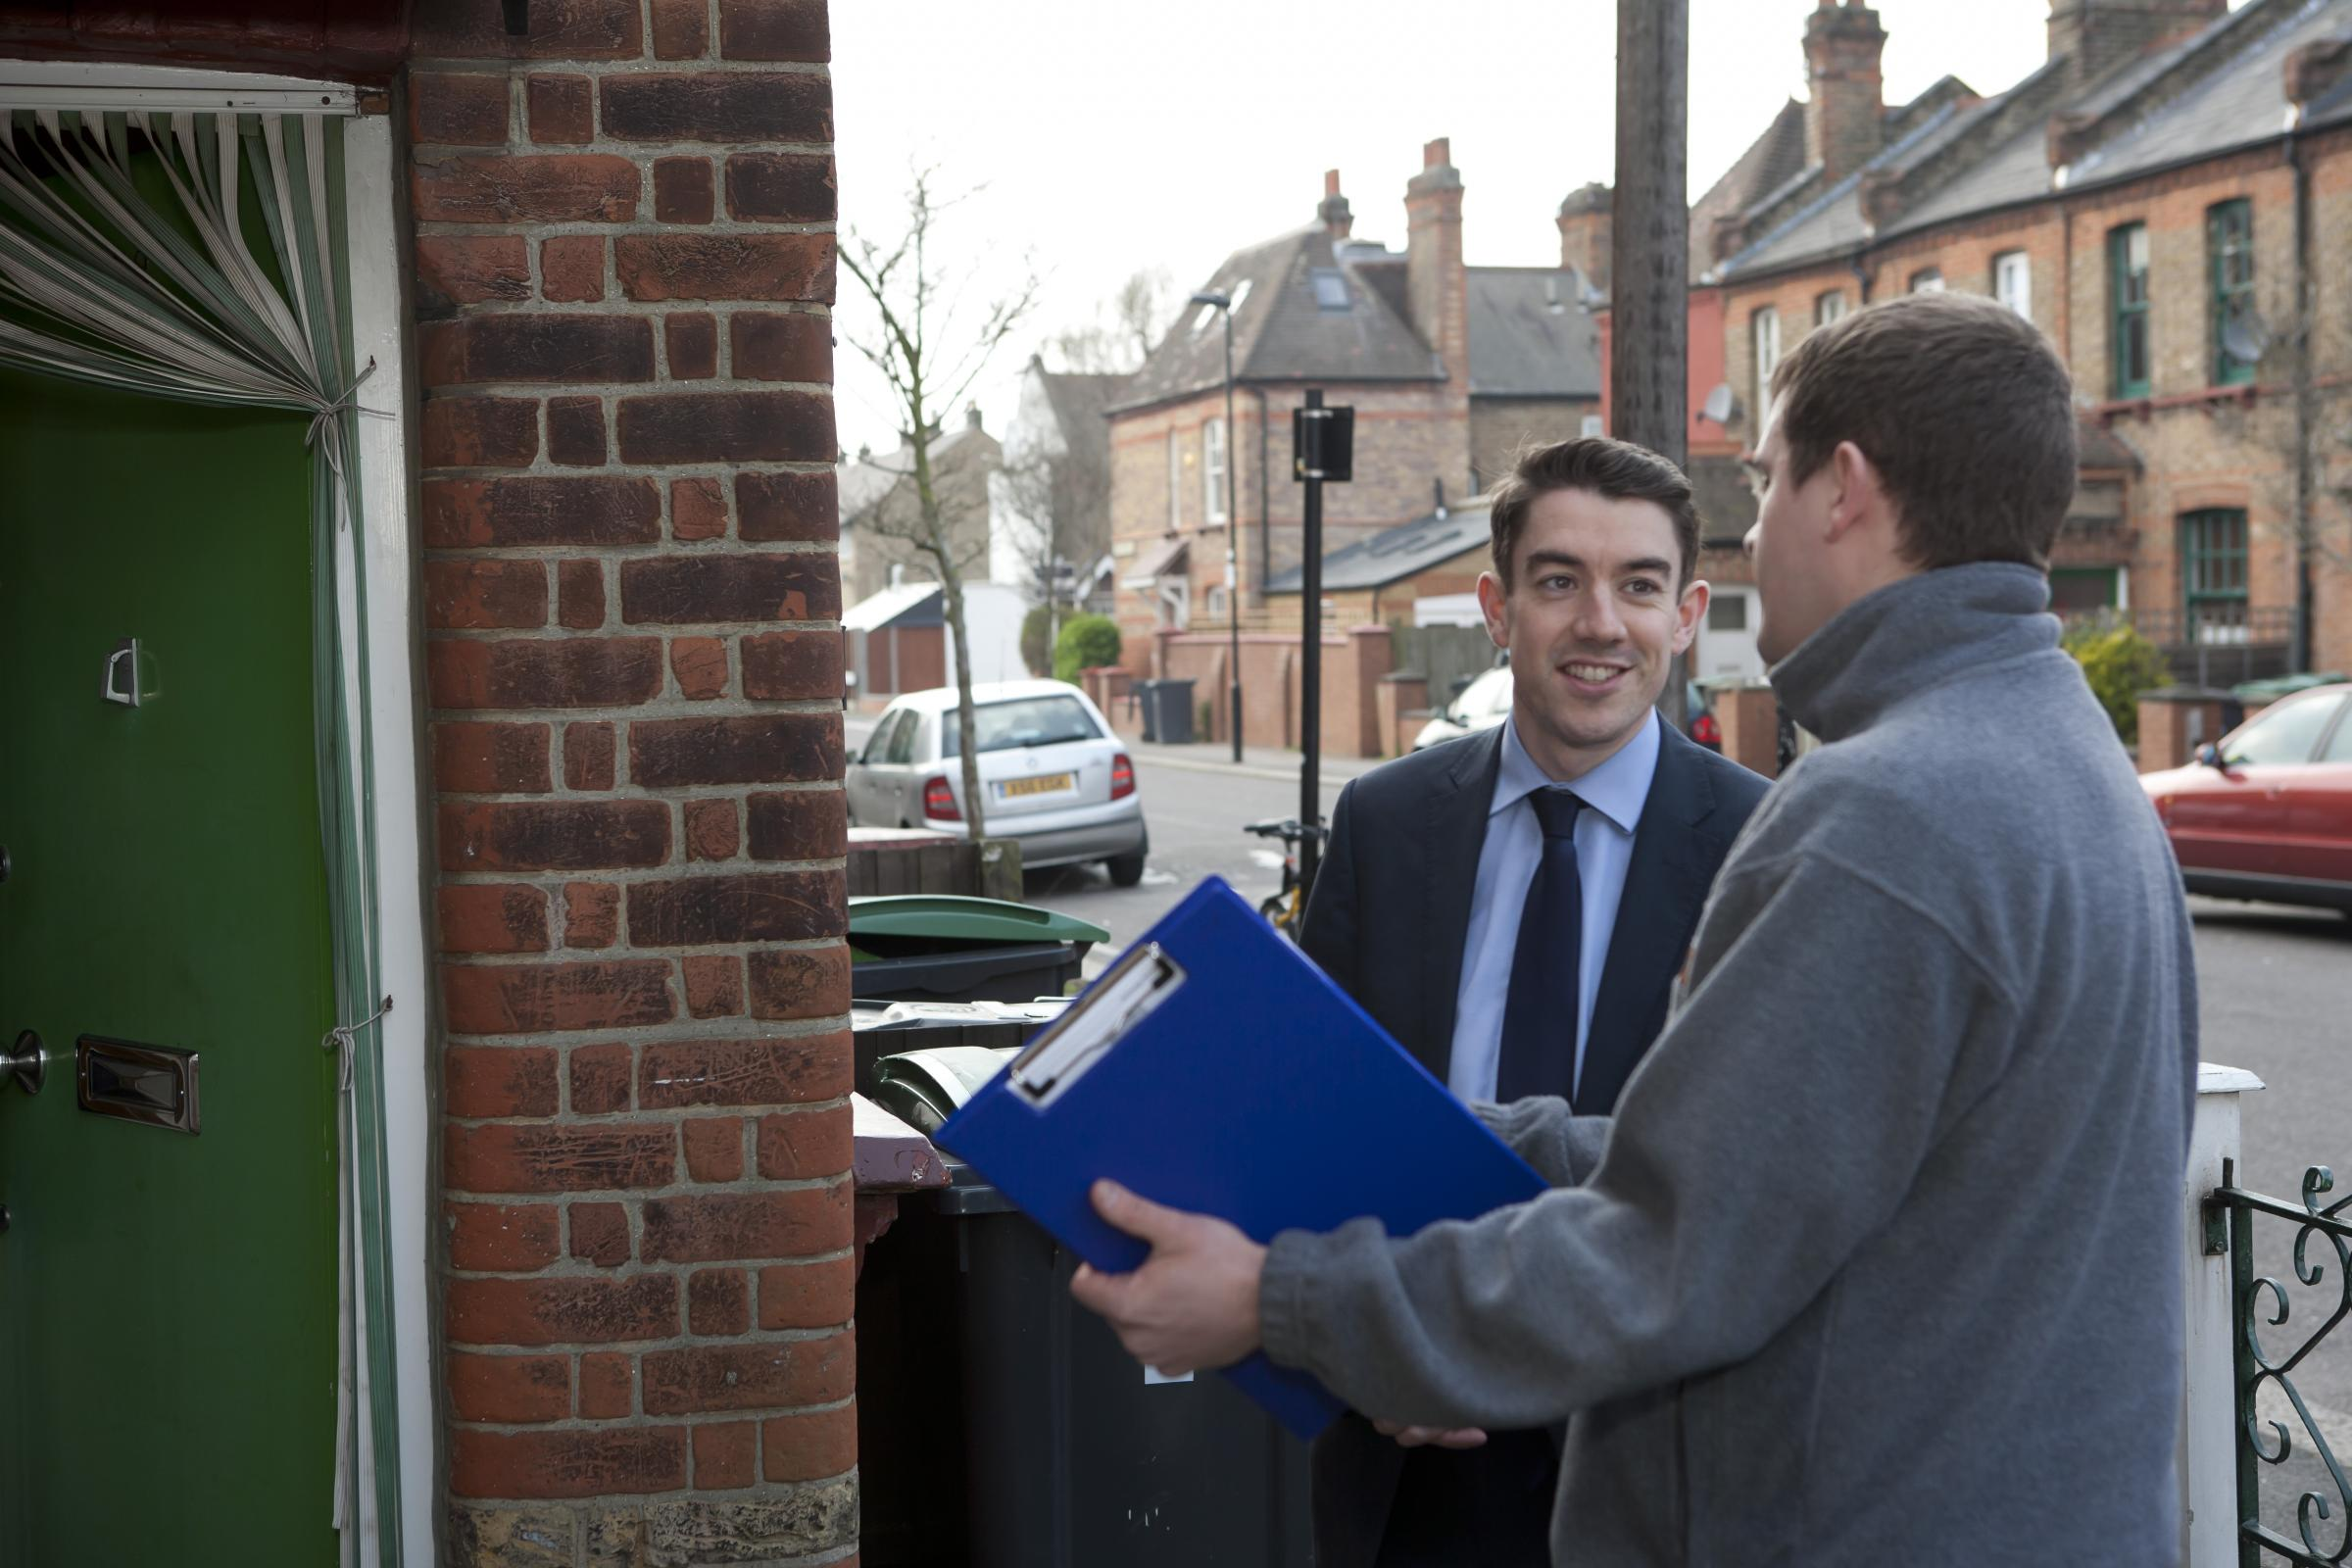 Councillor Alan Strickland goes surveying with officers from Homes For Haringey